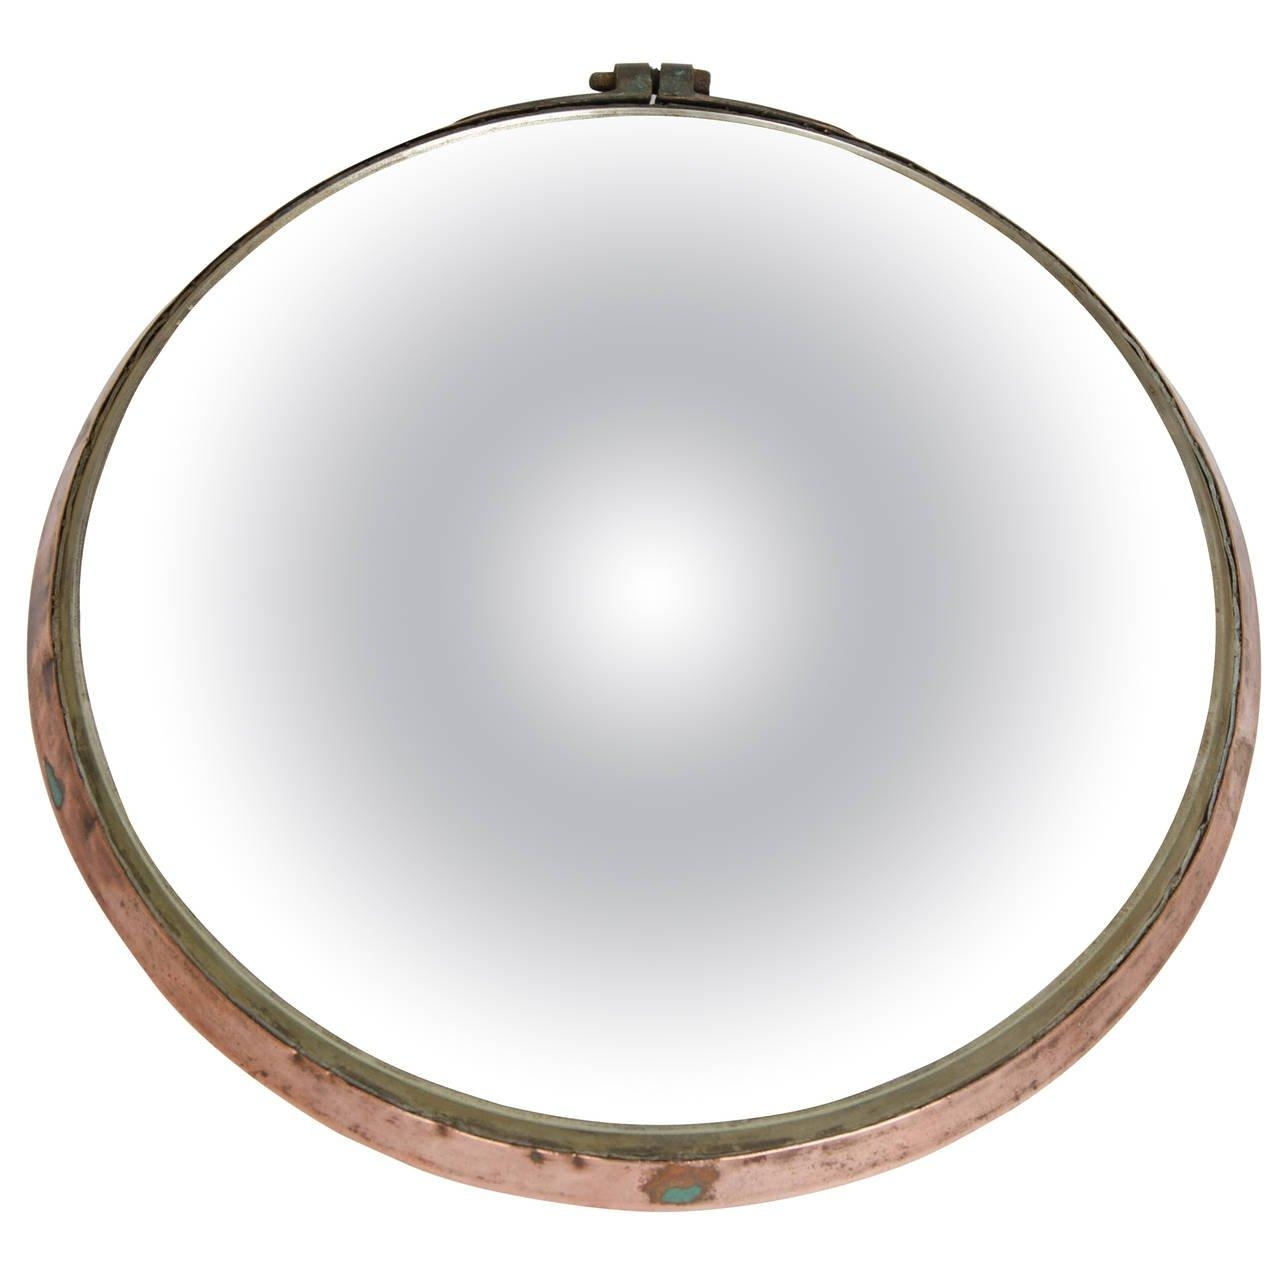 Concave Mirror For Sale 147 Inspiring Style For Convex Mirrors Throughout Small Convex Mirrors For Sale (View 10 of 20)